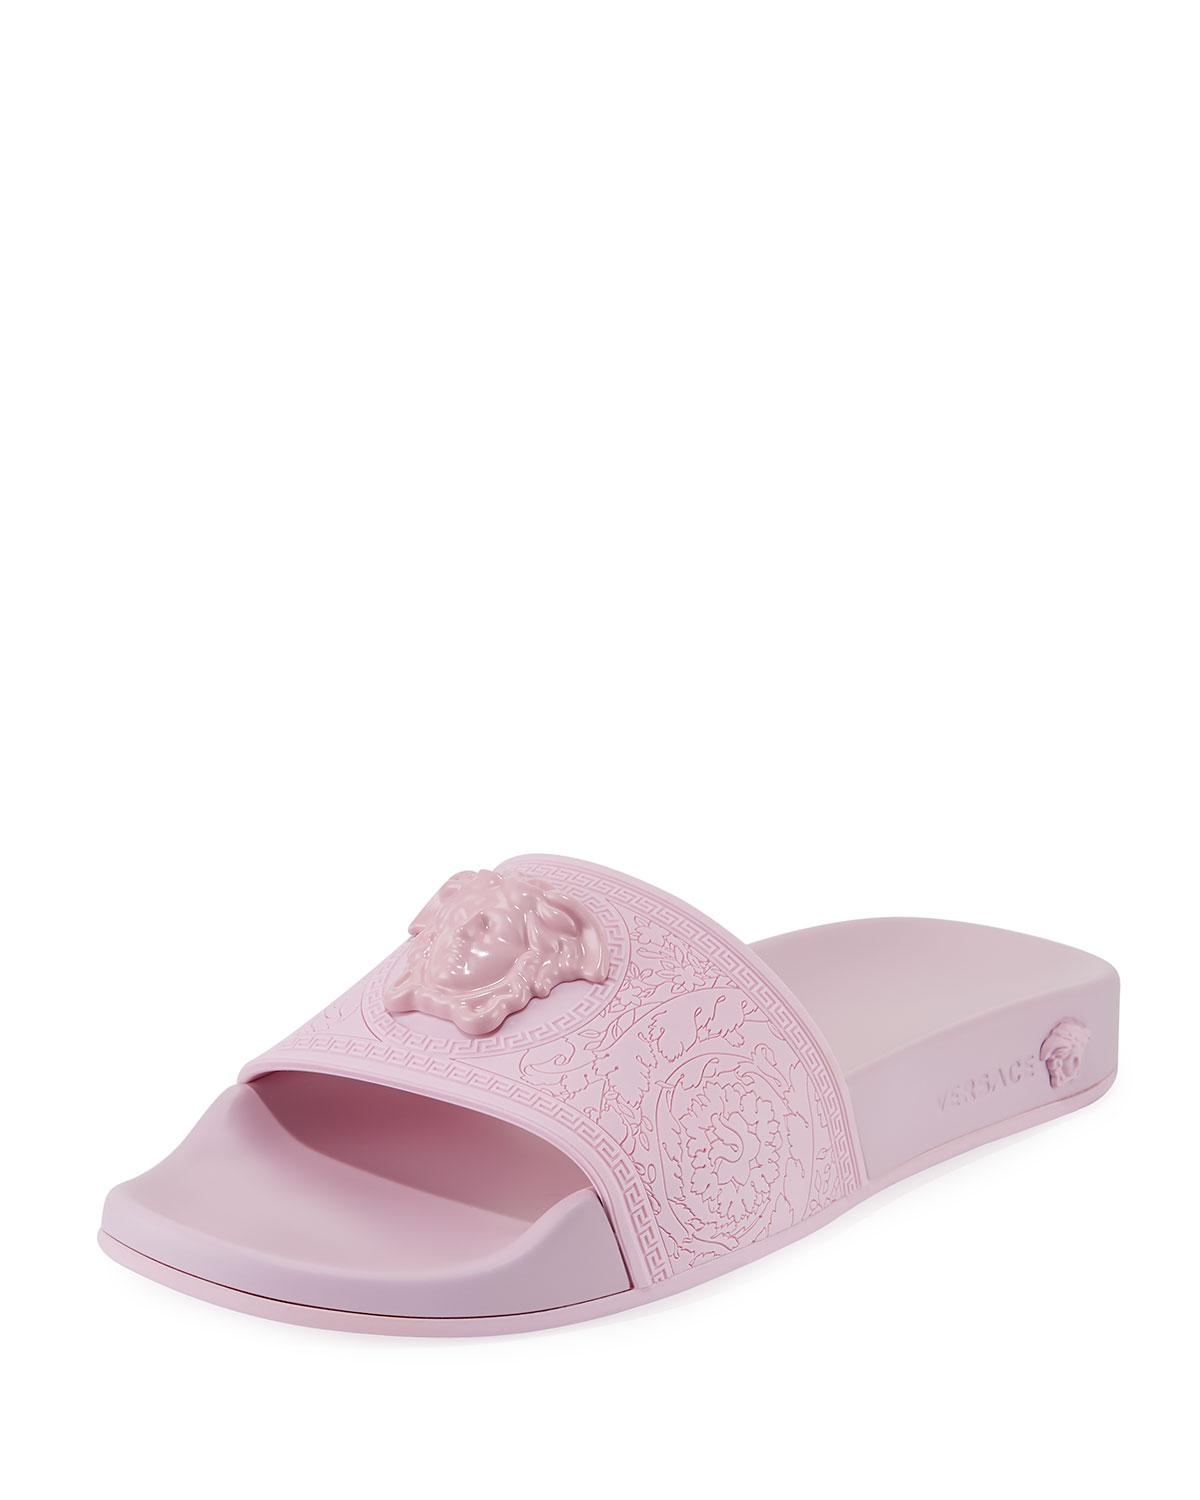 393787a74 Lyst - Versace Palazzo Medusa Rubber Pool Slide Sandal in Pink